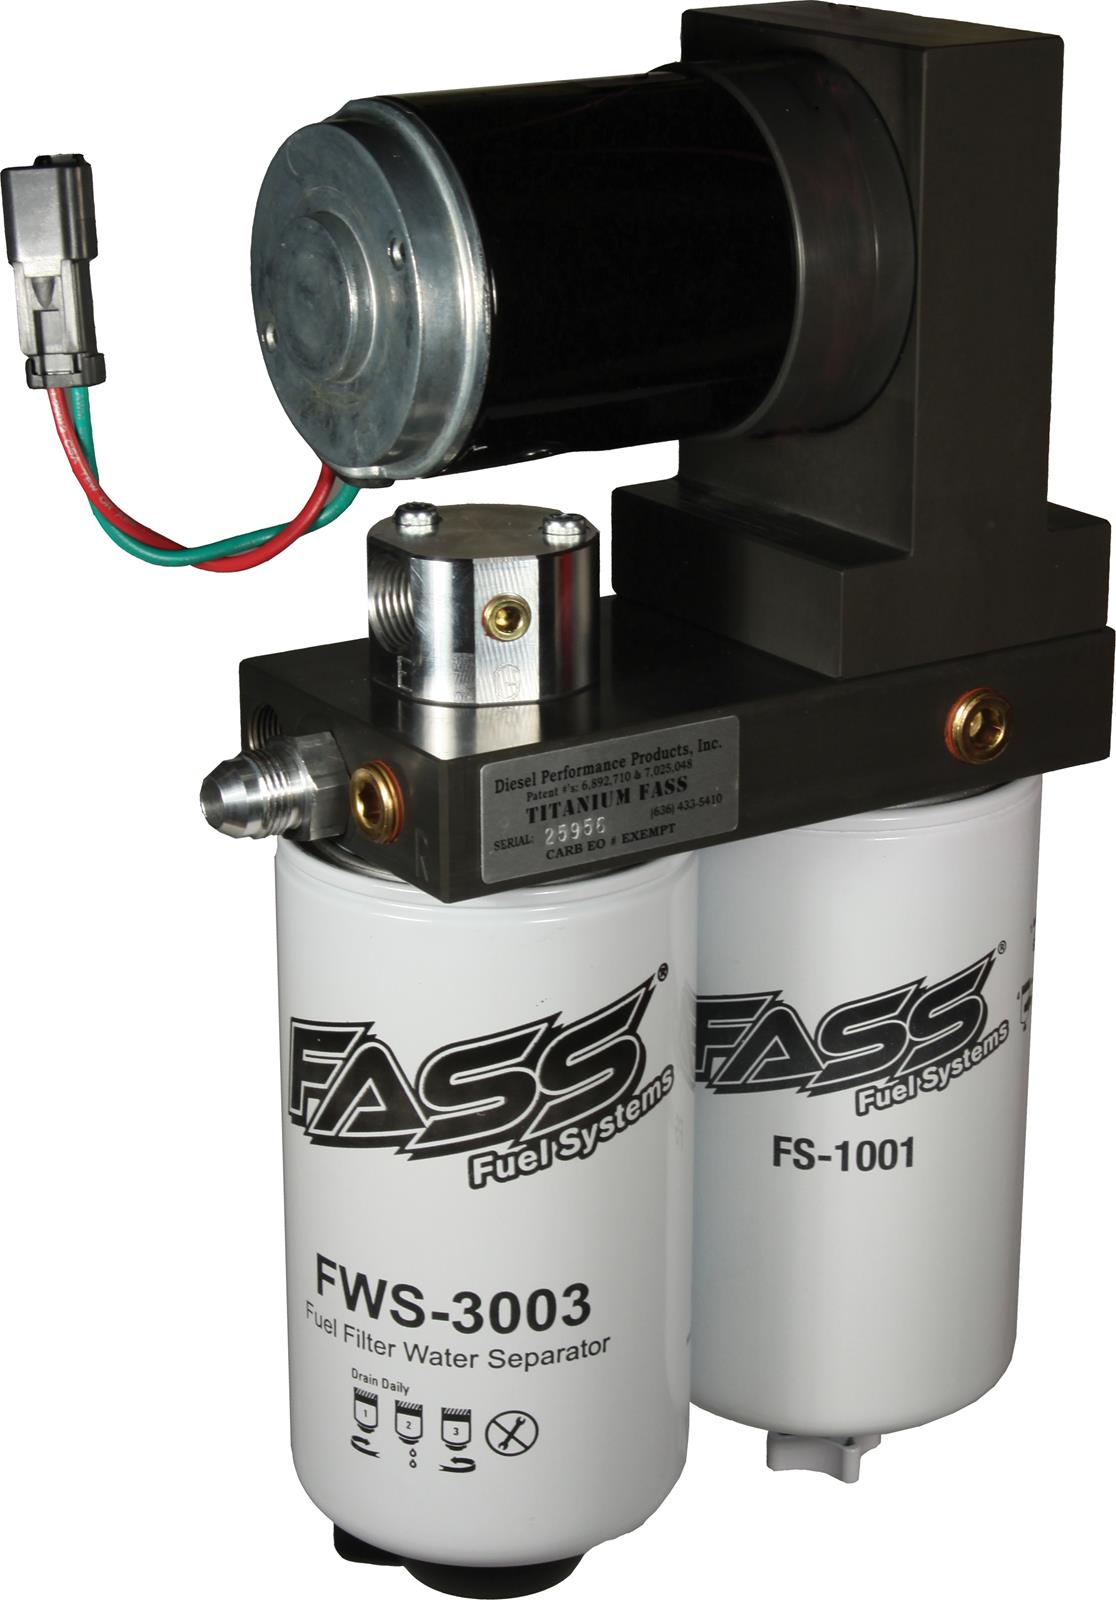 hight resolution of fass fuel systems titanium series fuel air separation systems t d08 150g free shipping on orders over 99 at summit racing